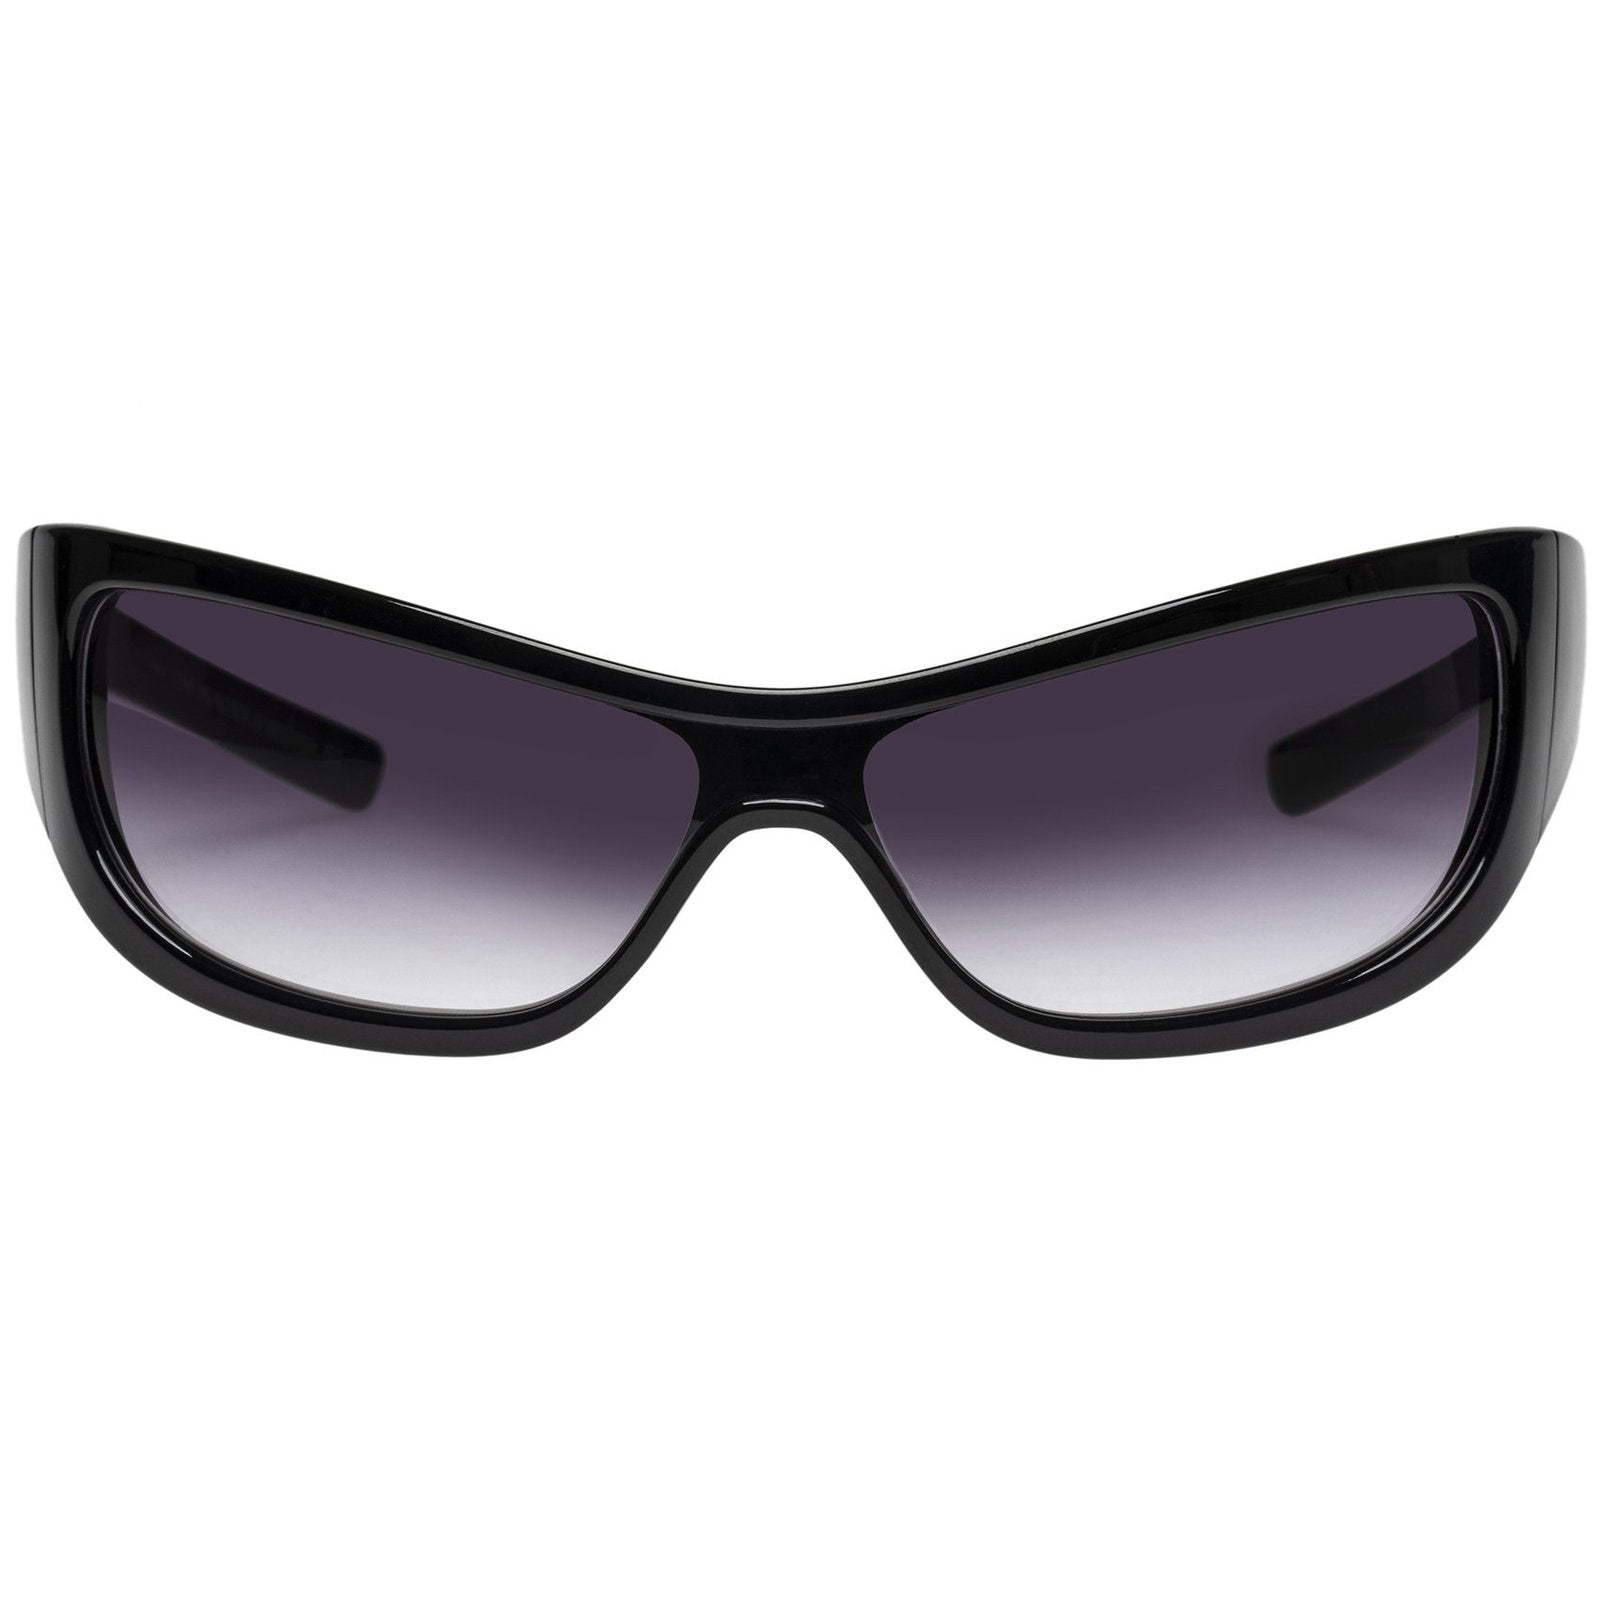 ADAM SELMAN X LE SPECS  / THE MONSTER / BLACK